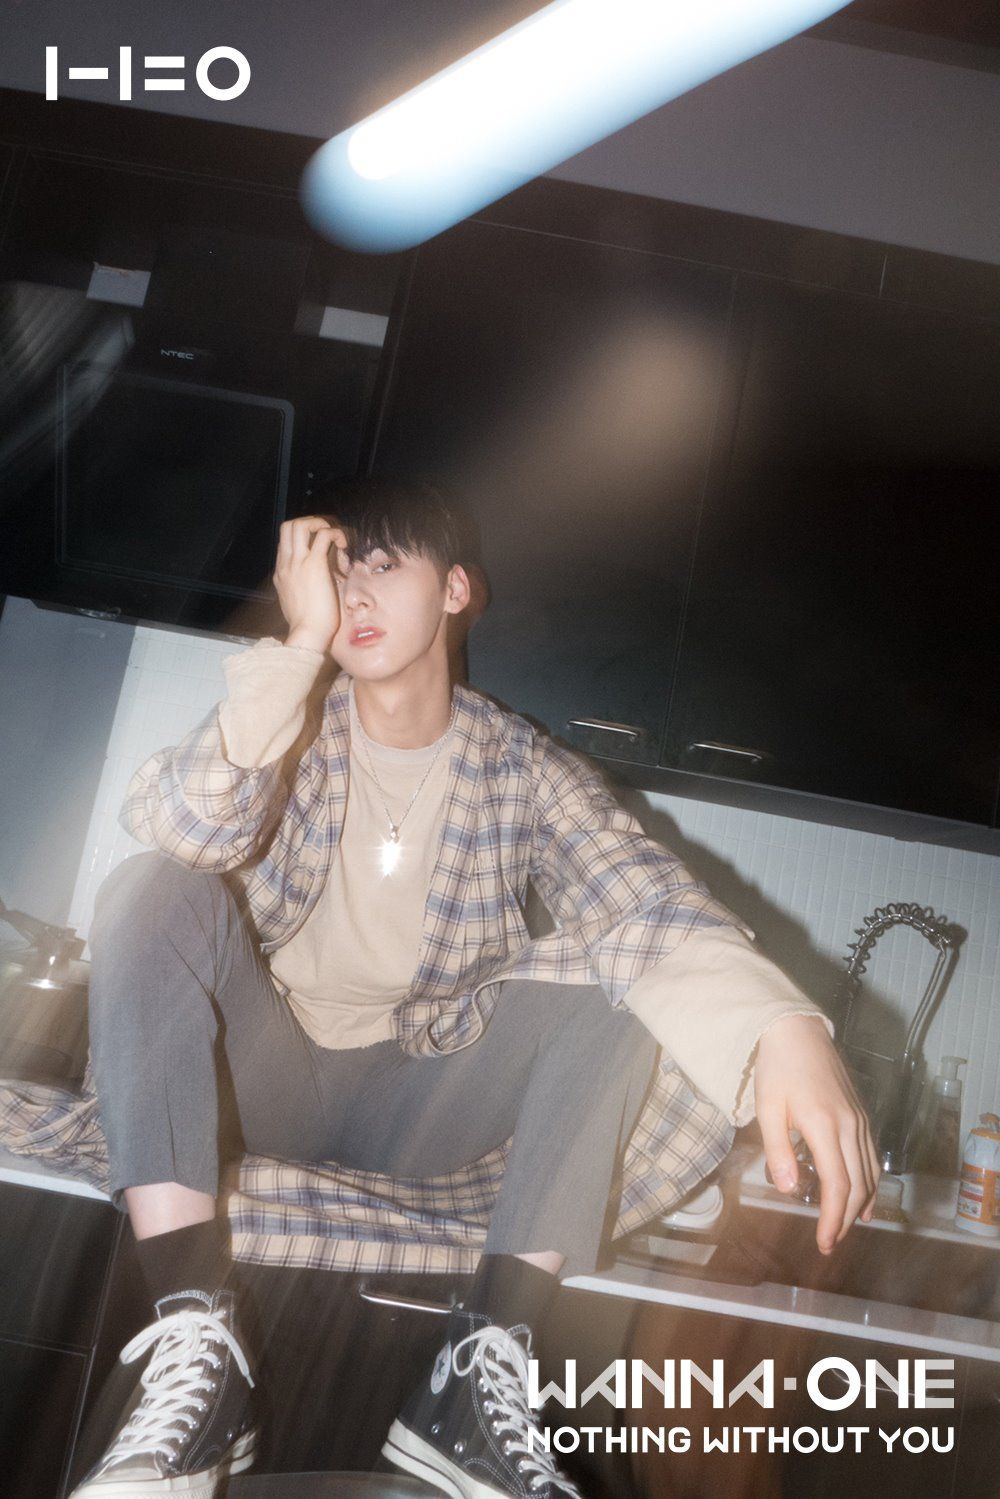 Hwang Minhyun Special Wanna One 1 1 0 Nothing Without You